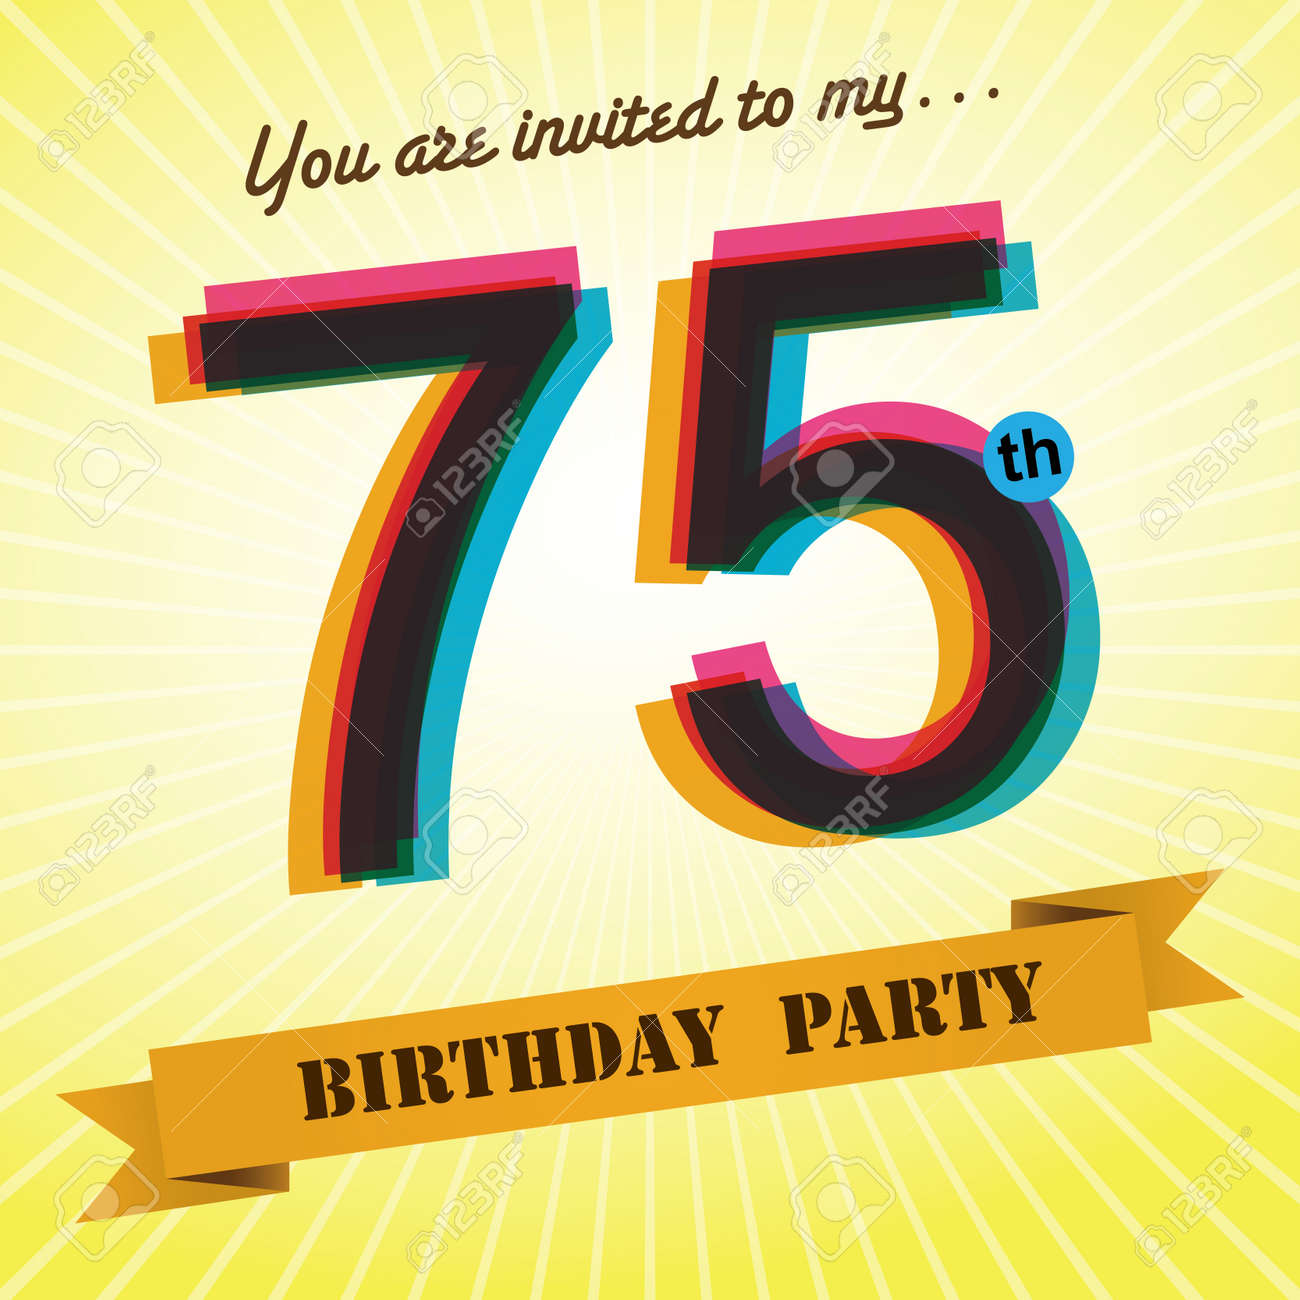 75th Birthday Party Invite Template Design Retro Style